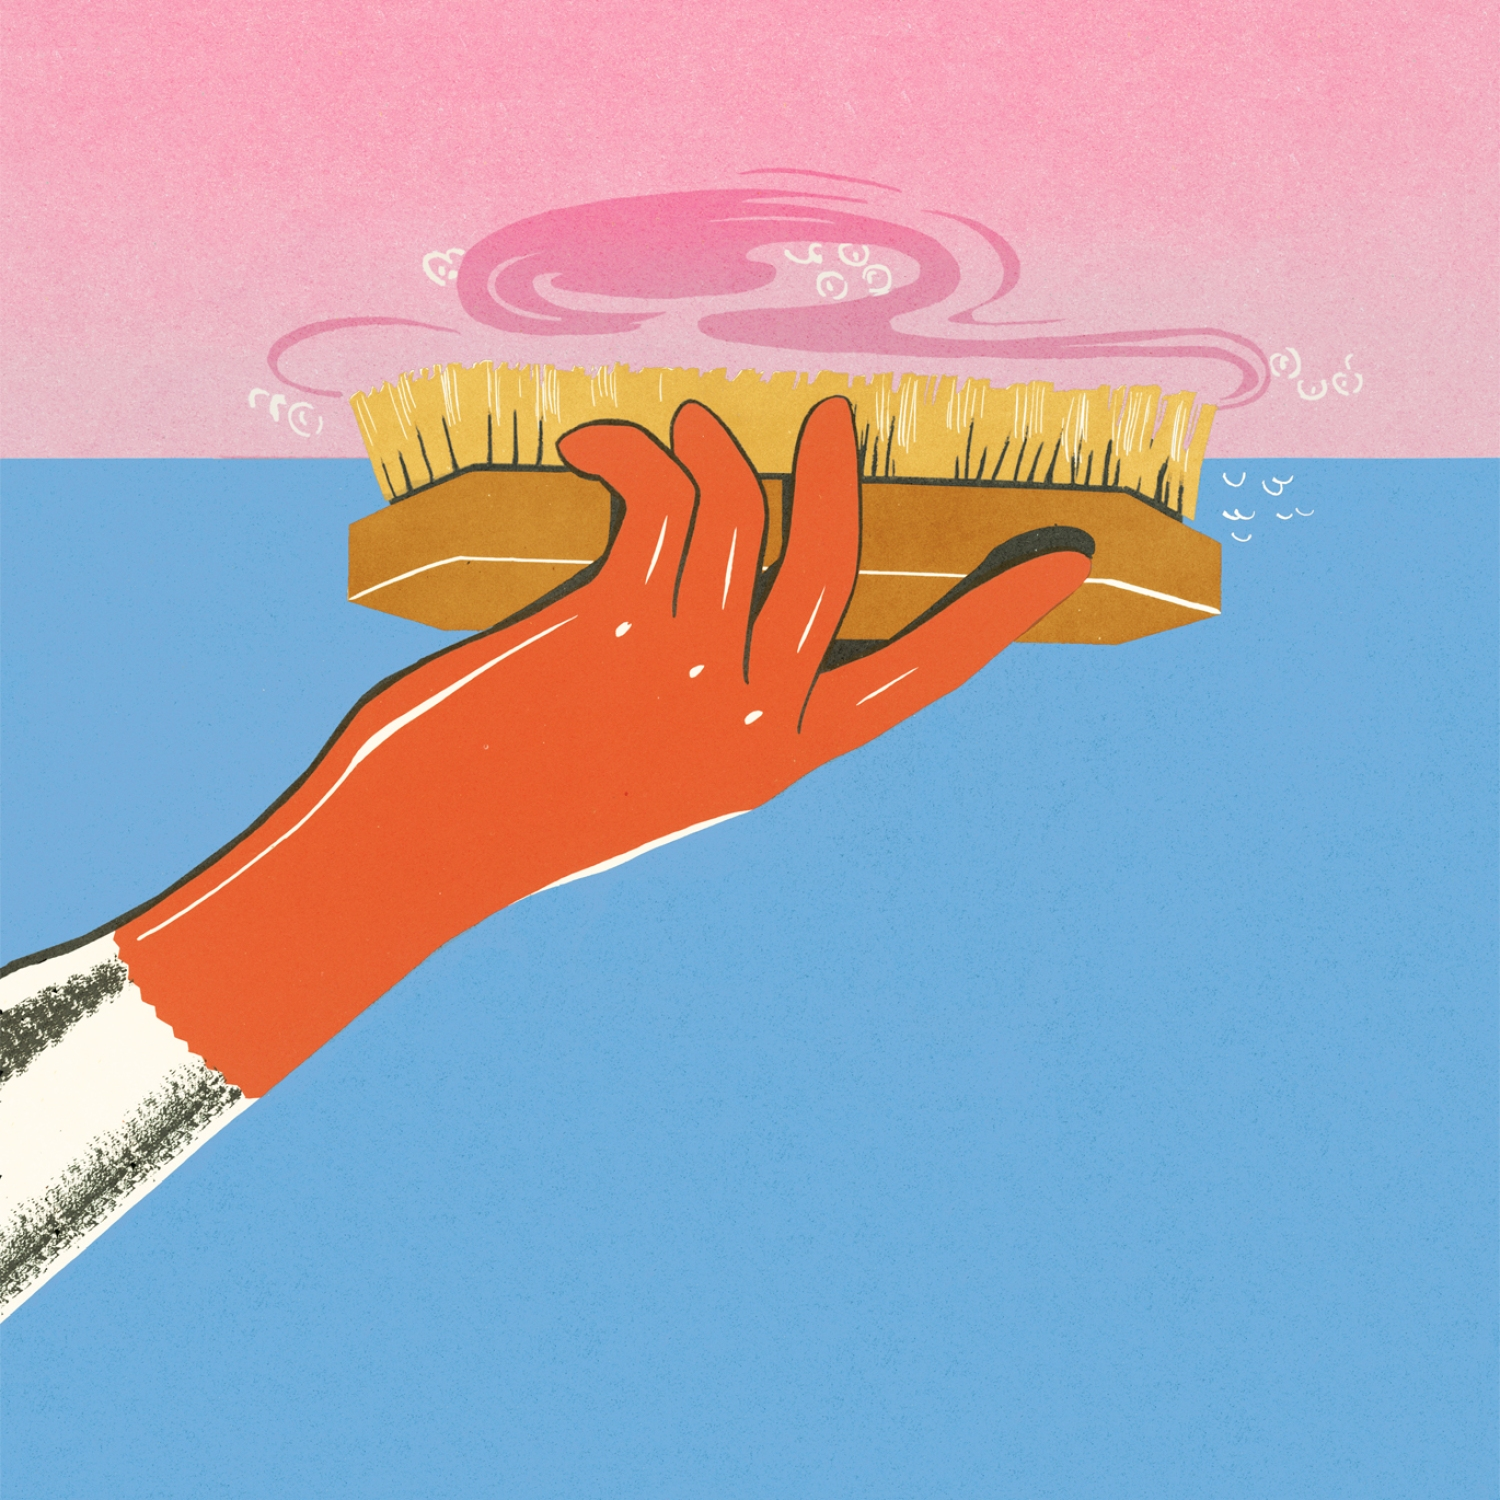 Illustration of person scrubbing a ceiling